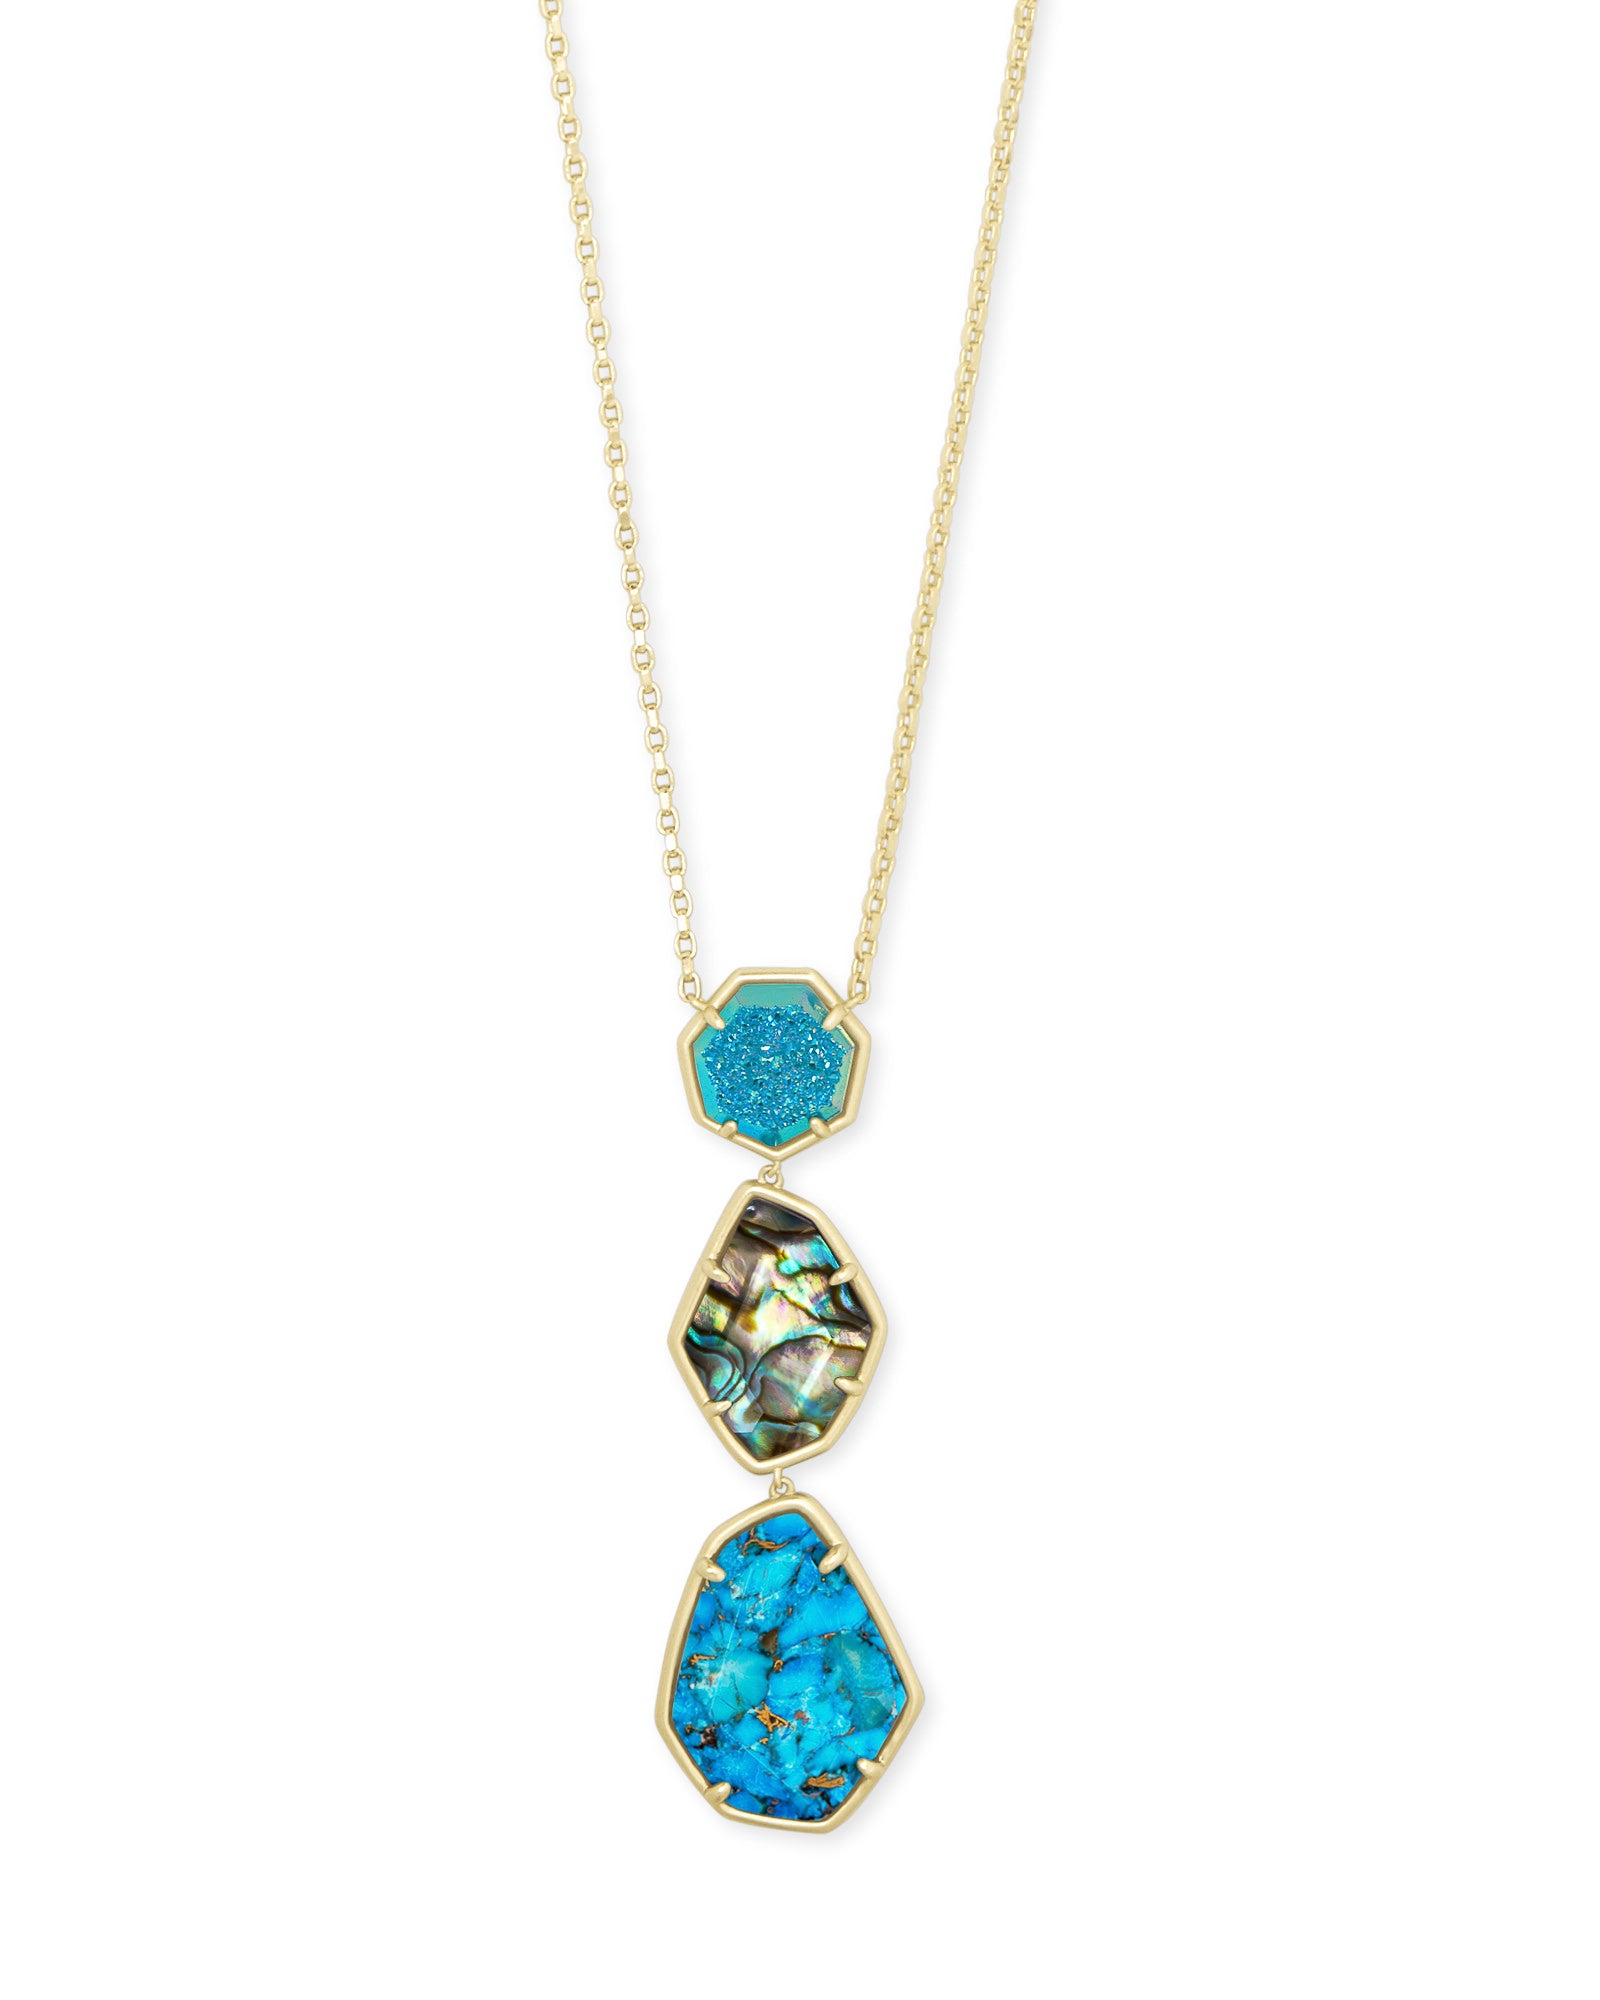 Nina Gold Long Pendant Necklace In Blue Mix